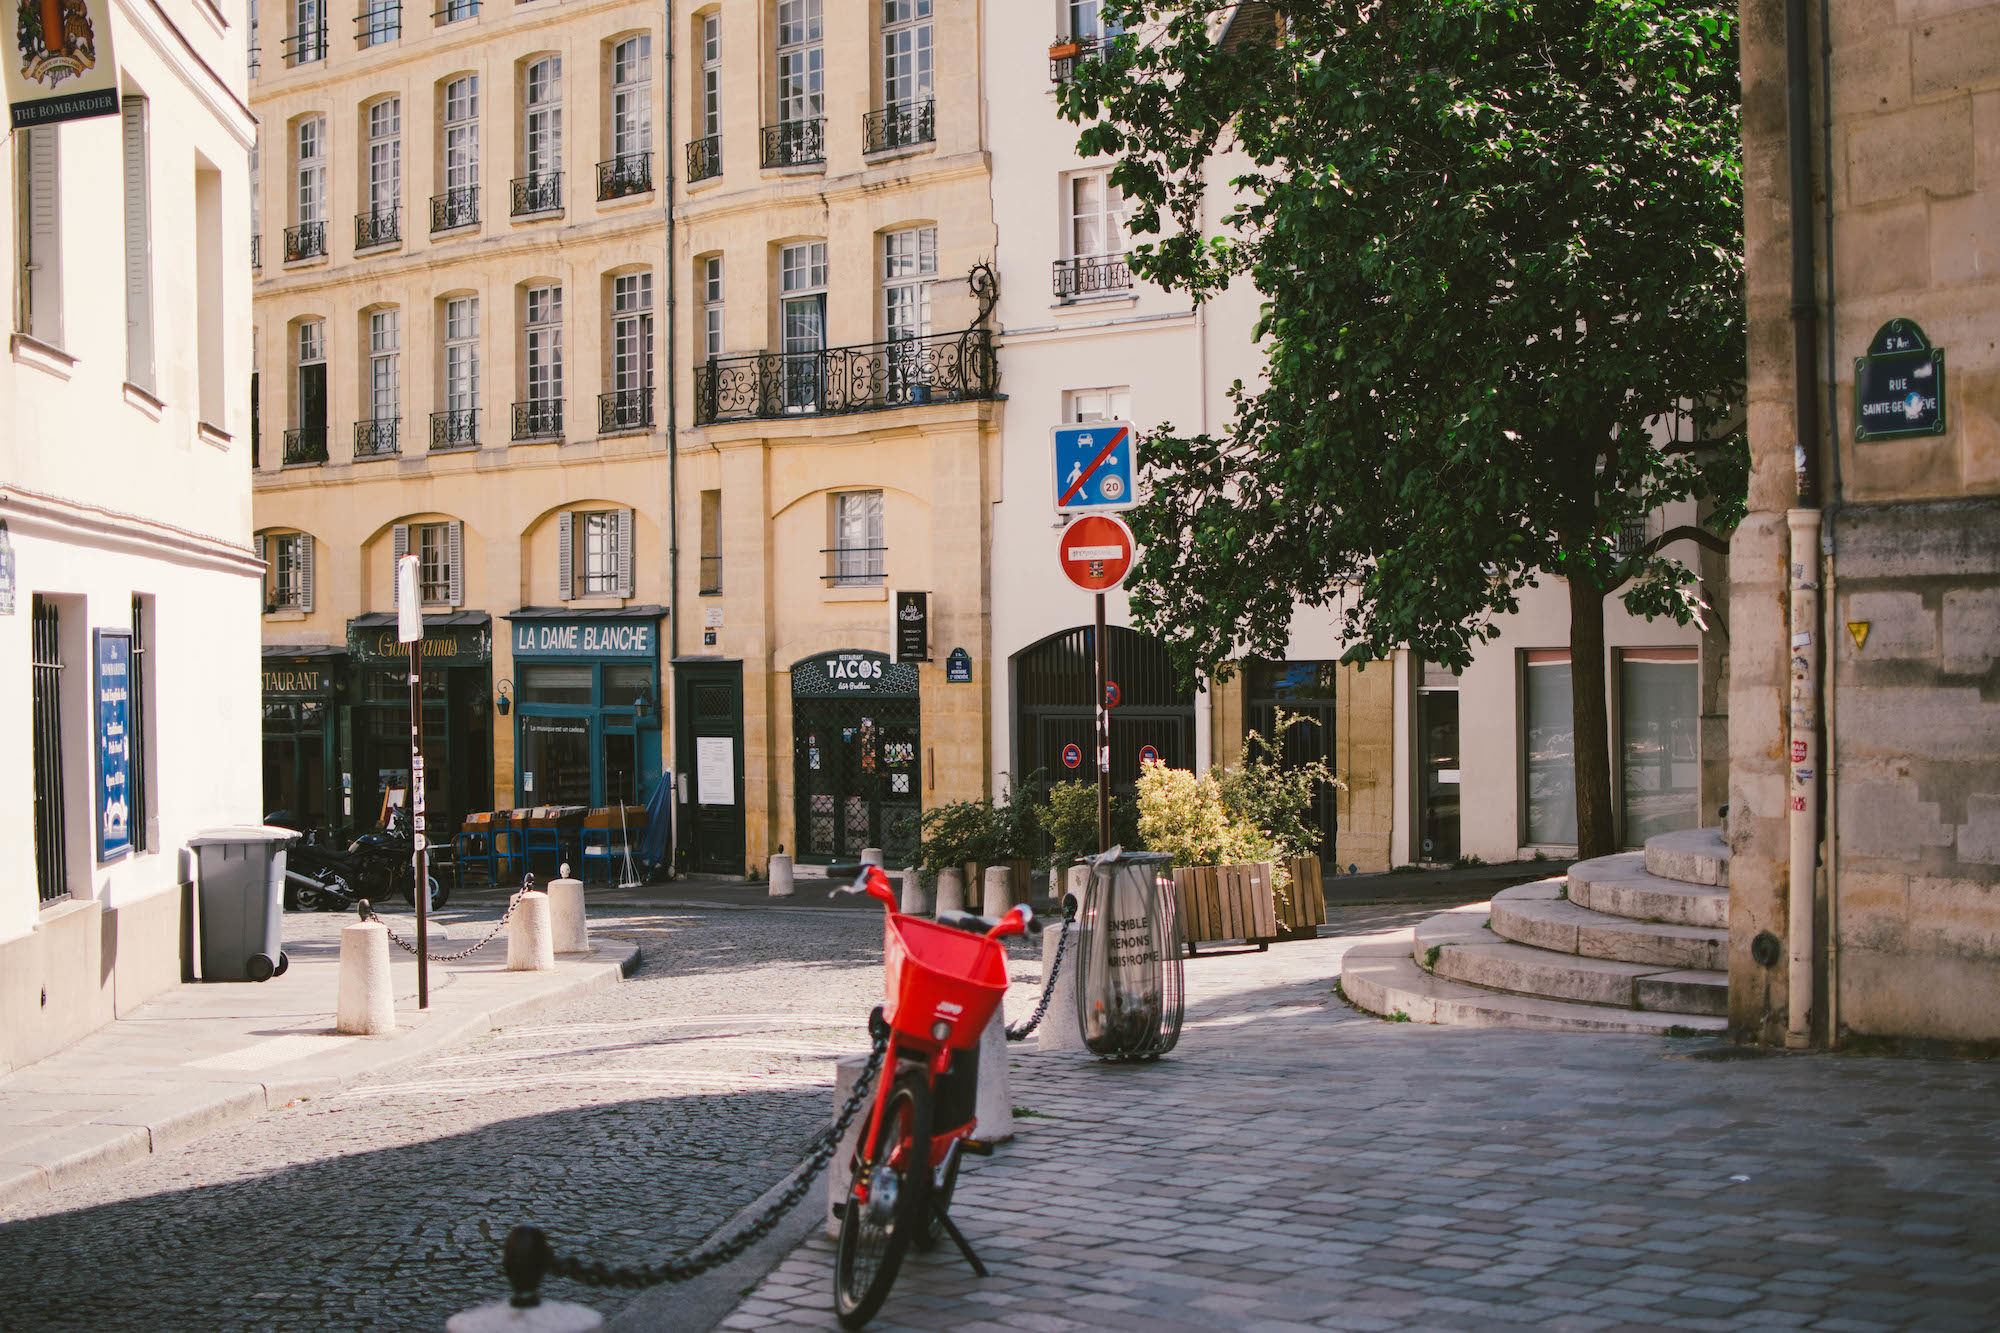 A cobblestone street in Paris with a red bike in the foreground.